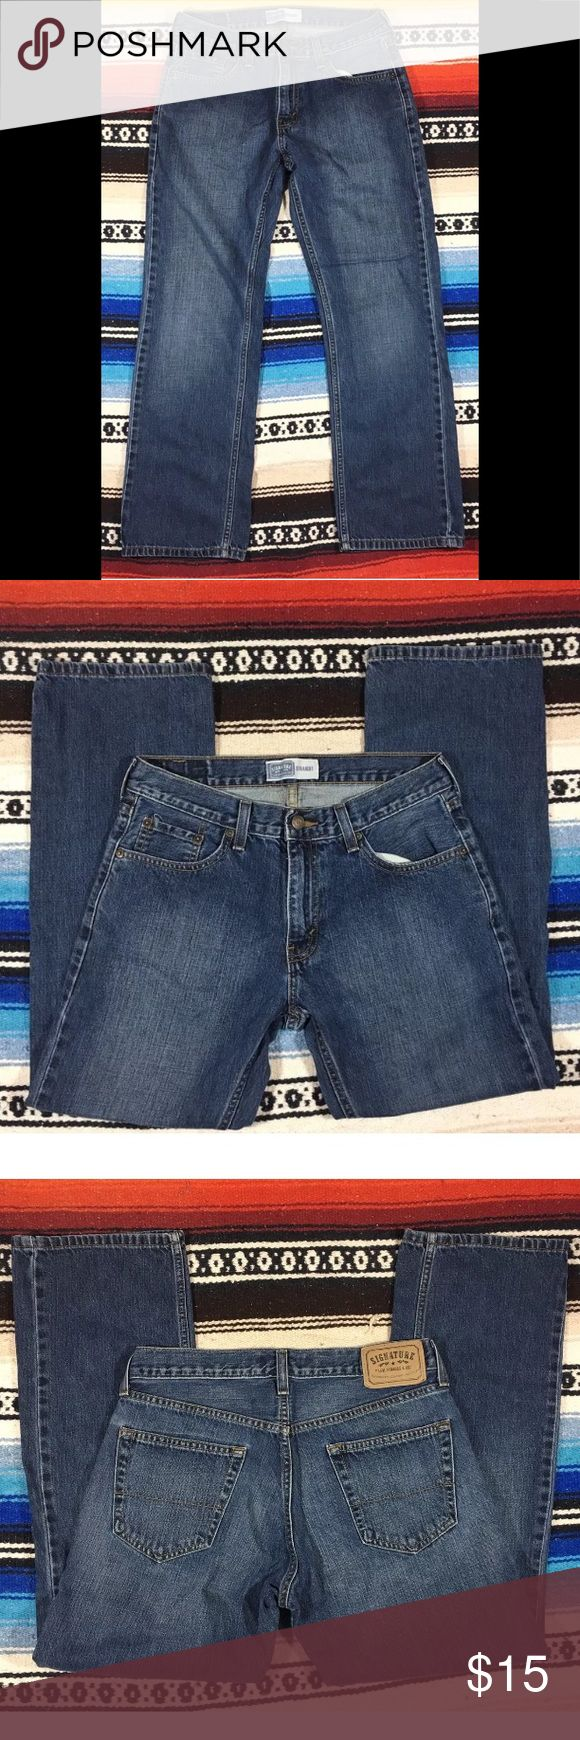 """Levi Strauss & Co Signature STRAIGHT Jeans 30 x 29 Levi Strauss & Co Signature STRAIGHT Levi Jeans Printed: 30 x 30 Actual: 30 x 28.5"""" 100% Cotton Excellent used condition! Measurements taken laying flat: Waist: 15"""" Rise: 9"""" Zipper length: 7"""" Hip: 21.5"""" Inseam: 28.5"""" Leg opening: 8.5"""" Signature by Levi Strauss Jeans Straight"""